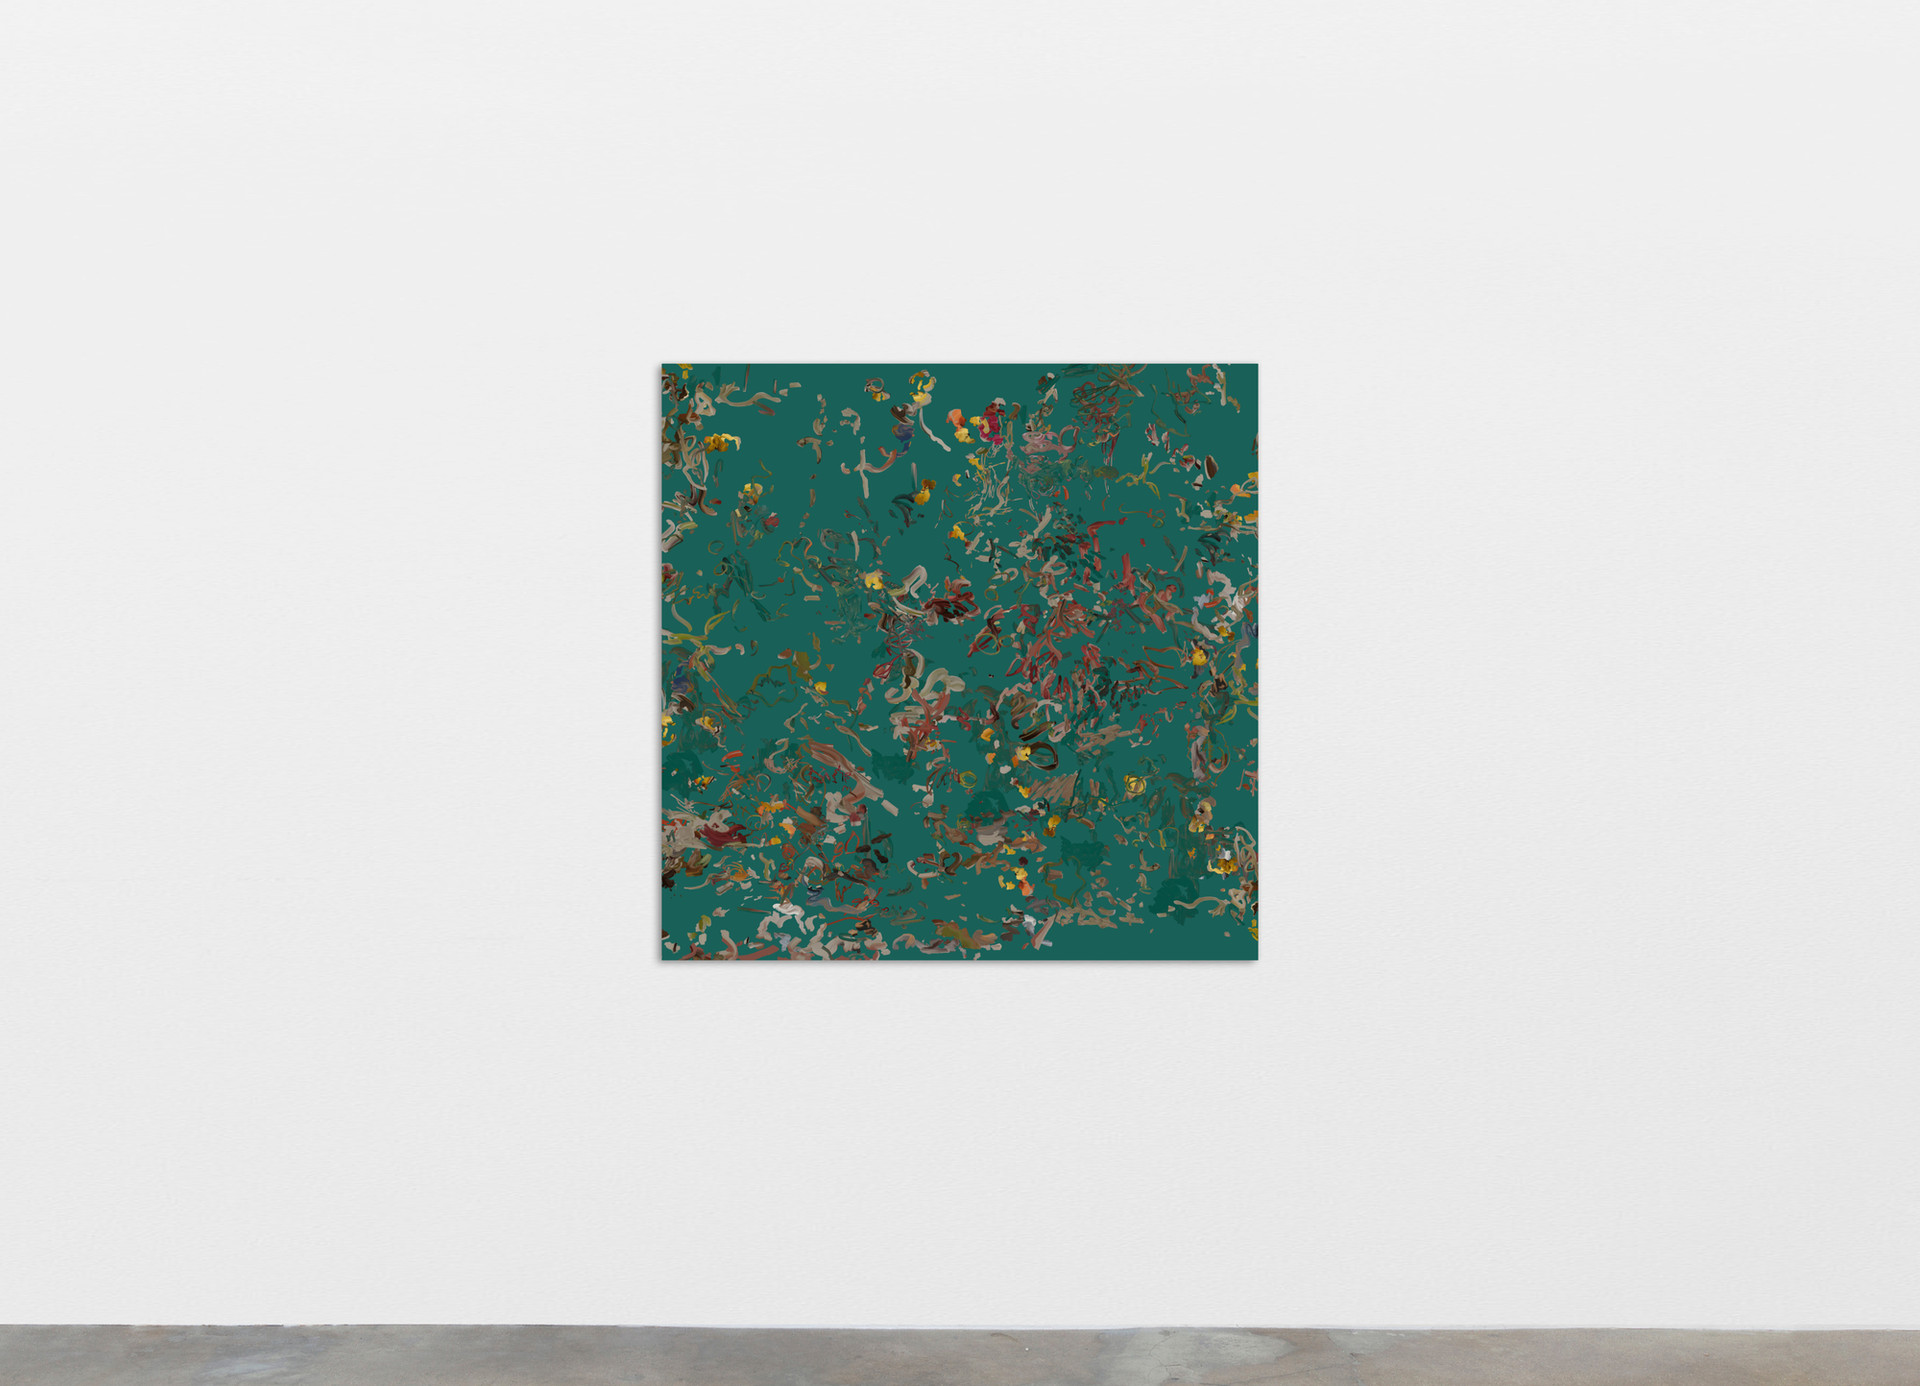 """Petra Cortright Kettle Chips """"lab/greyhound mix""""_landrover renovation 1961 LANDR9.EXE:, 2020 Digital painting on anodized aluminum 83.82 x 83.82 cm 33 x 33 in"""